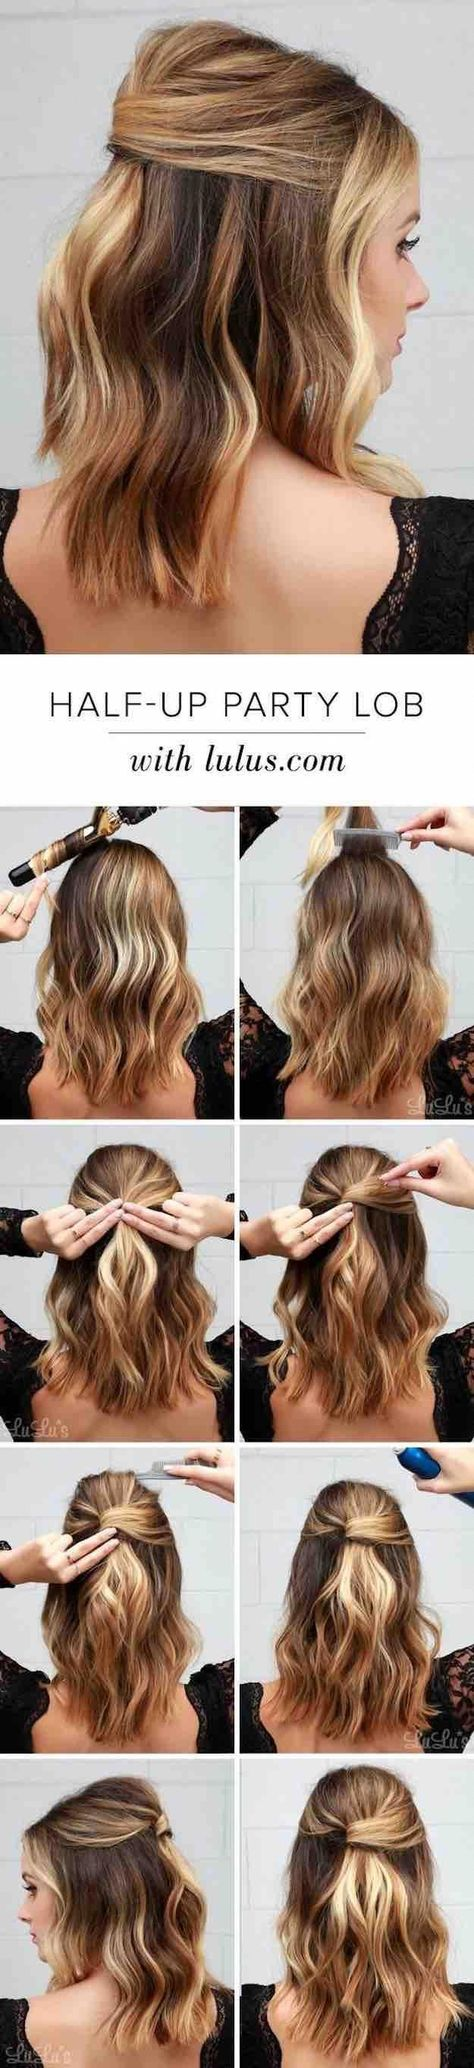 List Of Pinterest Lob Styling Tutorials Easy Hairstyles Half Up